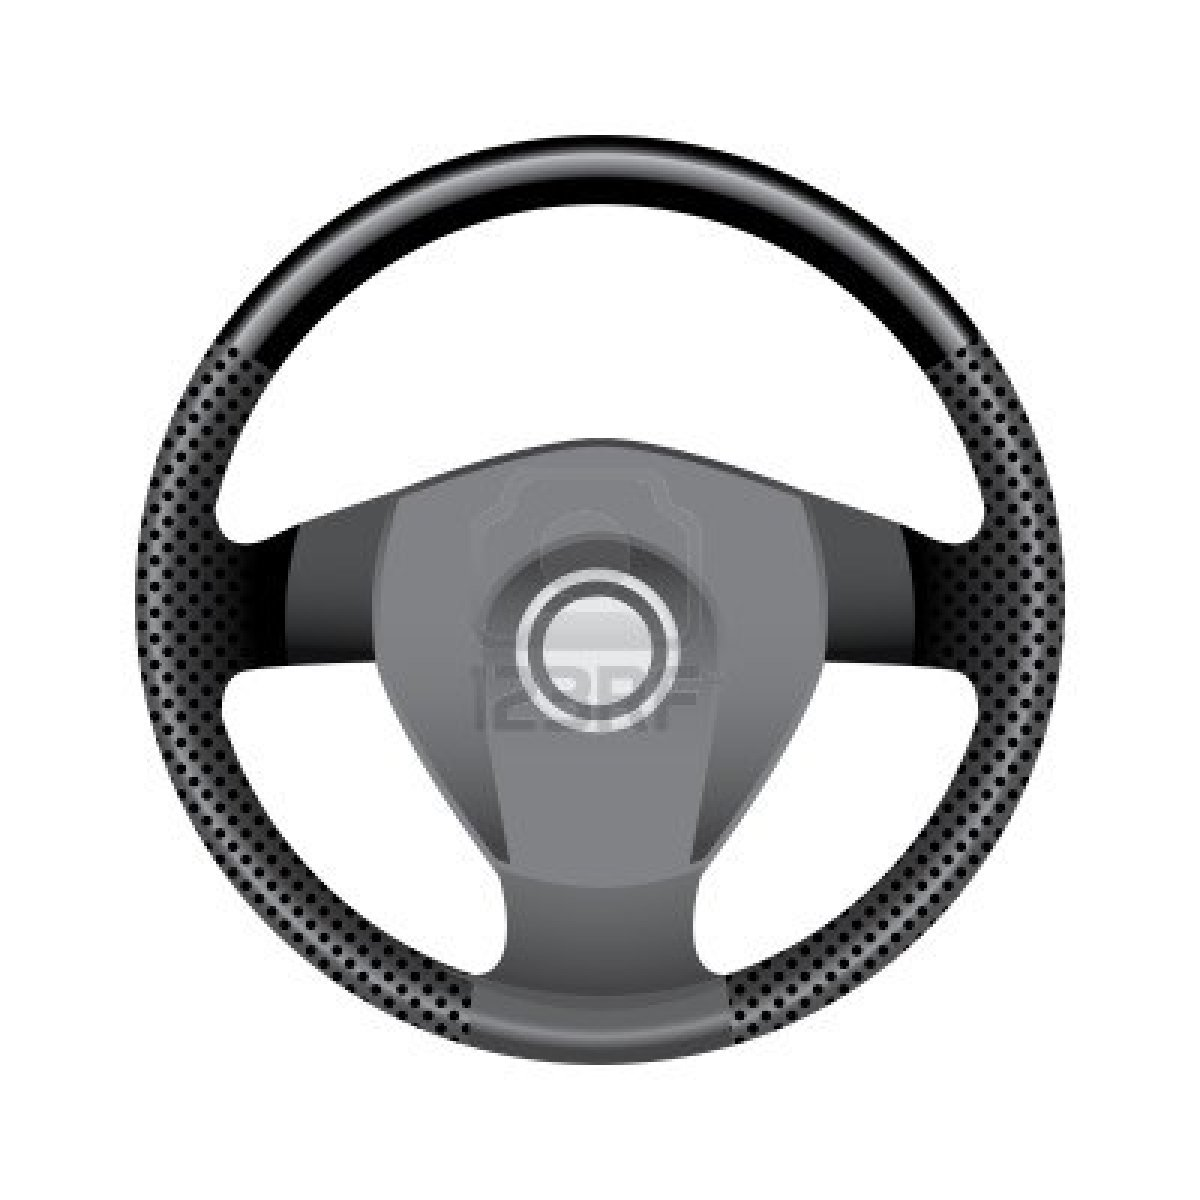 Pics For > Steering Wheel Clipart